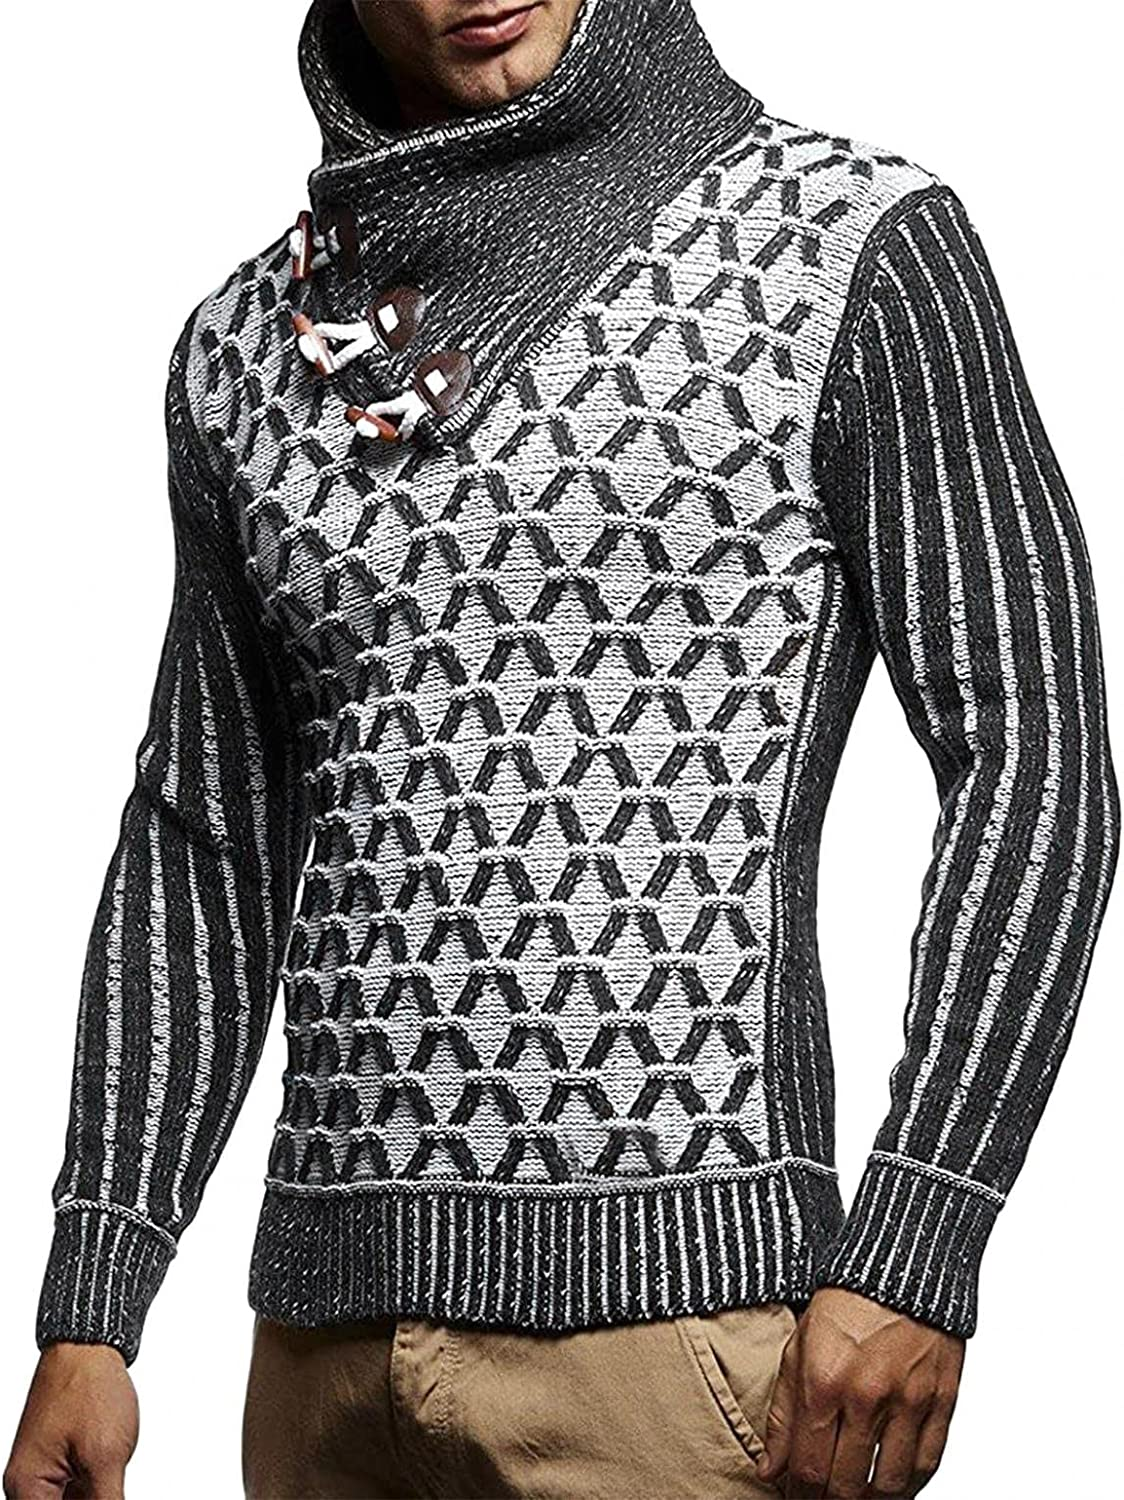 Mens Knitted Sweaters Turtleneck Long Sleeve Pullover Sweatershirts Lightweight Thicken Thermal Wool Top Blouse